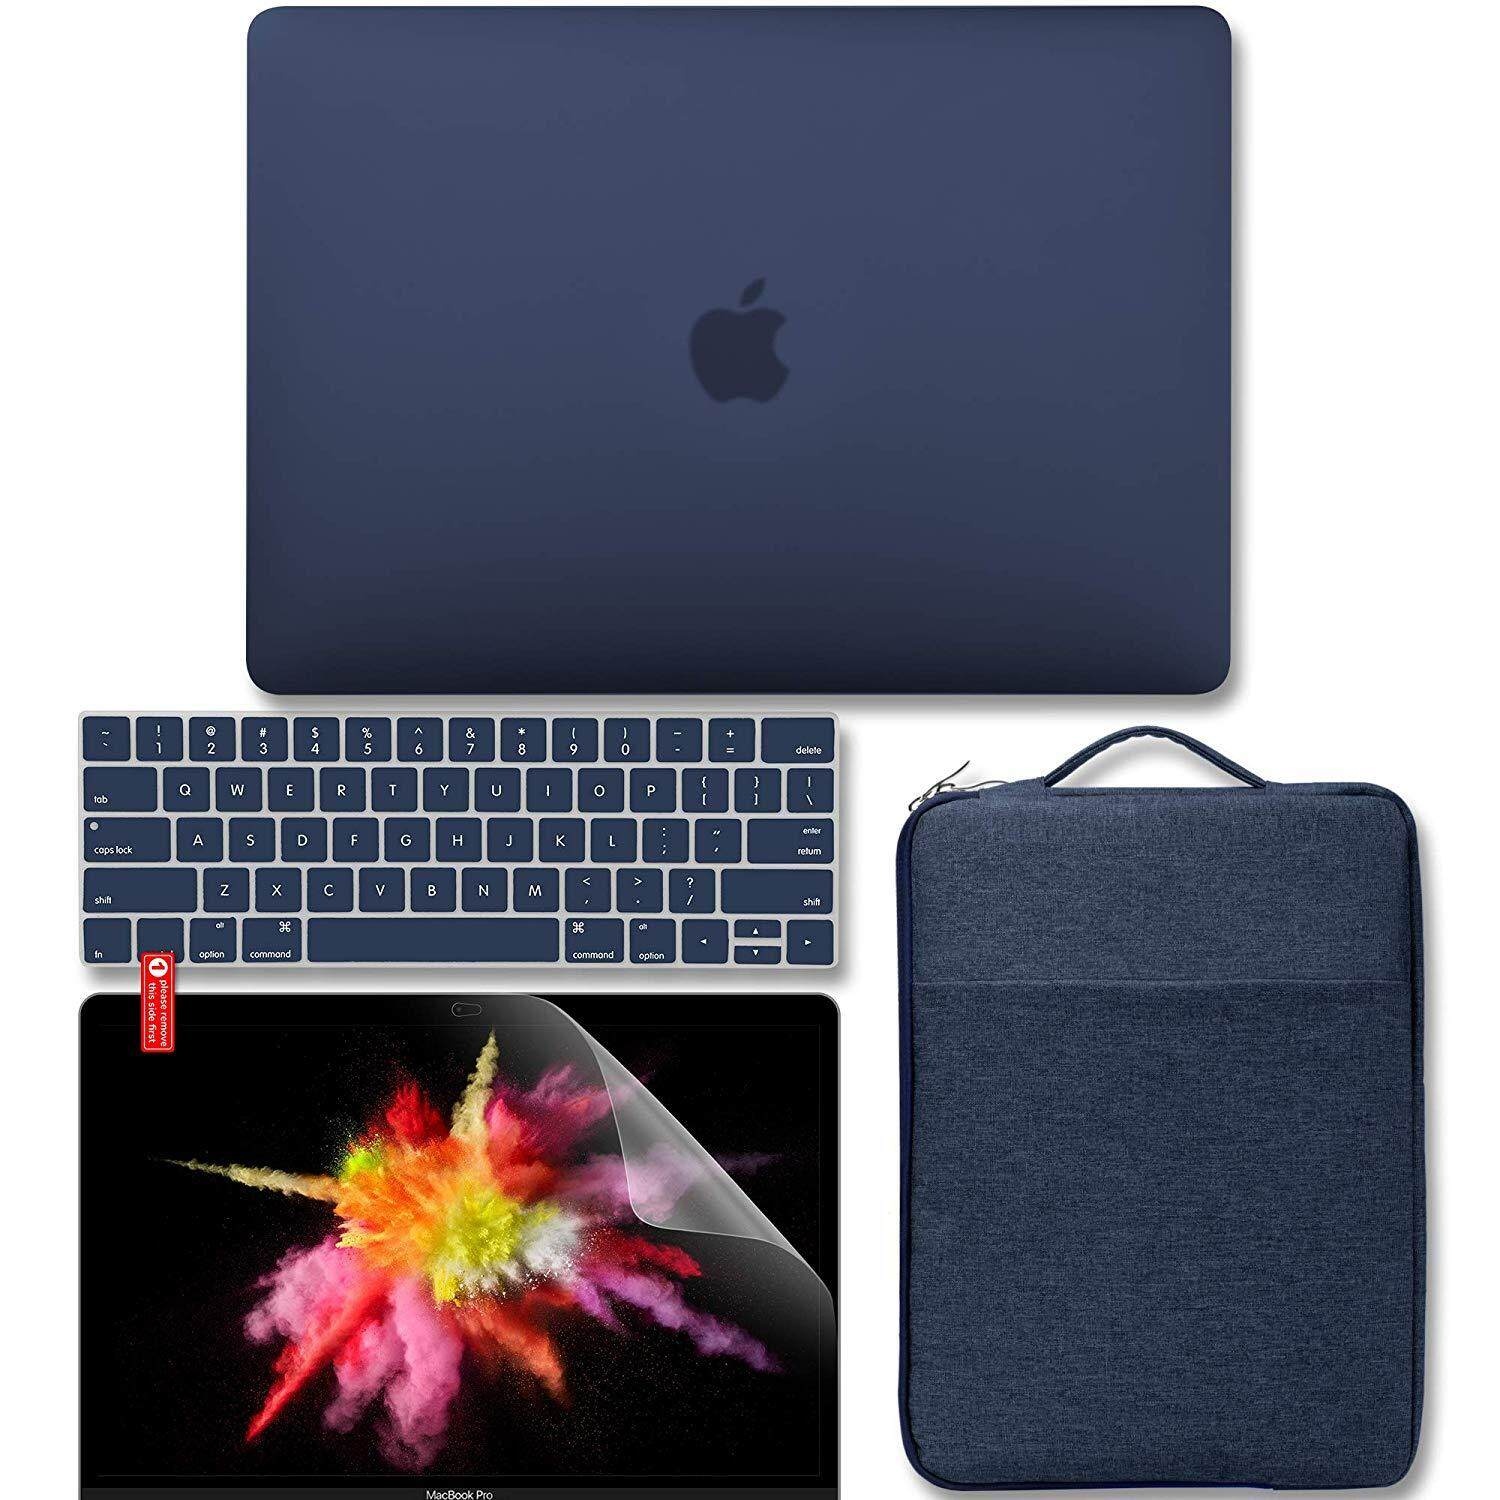 New MacBook Pro 13 inch Case Touch Bar A1989 / A1706 / A1708 2016, 2017, 2018 Release 4 in 1 Bundle, Hard Matte Case, Carrying Sleeve Bag, Keyboard Cover & Screen Protector – Peony blue